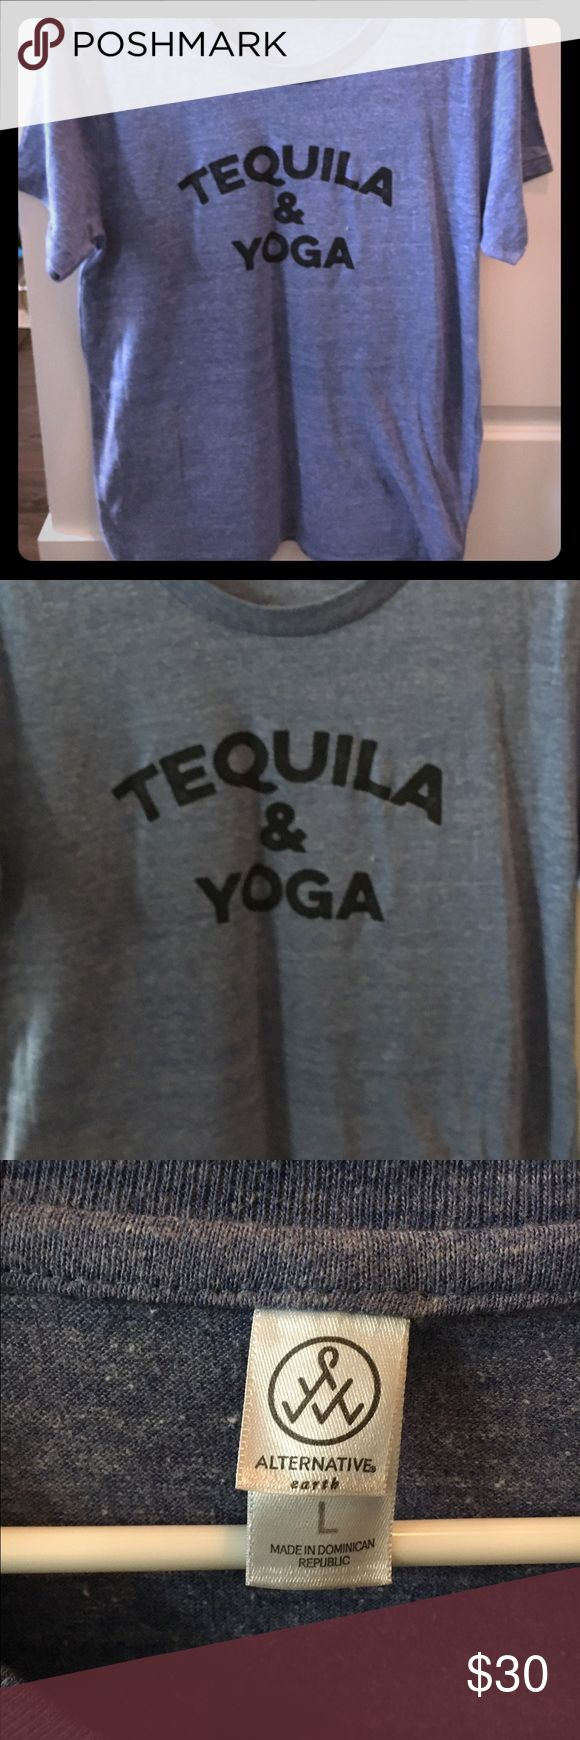 Tequila & Yoga Tee NWOT What a combo!! A super comfy tee that speaks the truth. Heather Blue with black lettering. Unisex so it would fit looser on most women's frames. Local company made these shirts so you're not gonna find many! NWOT Tops Tees - Short Sleeve